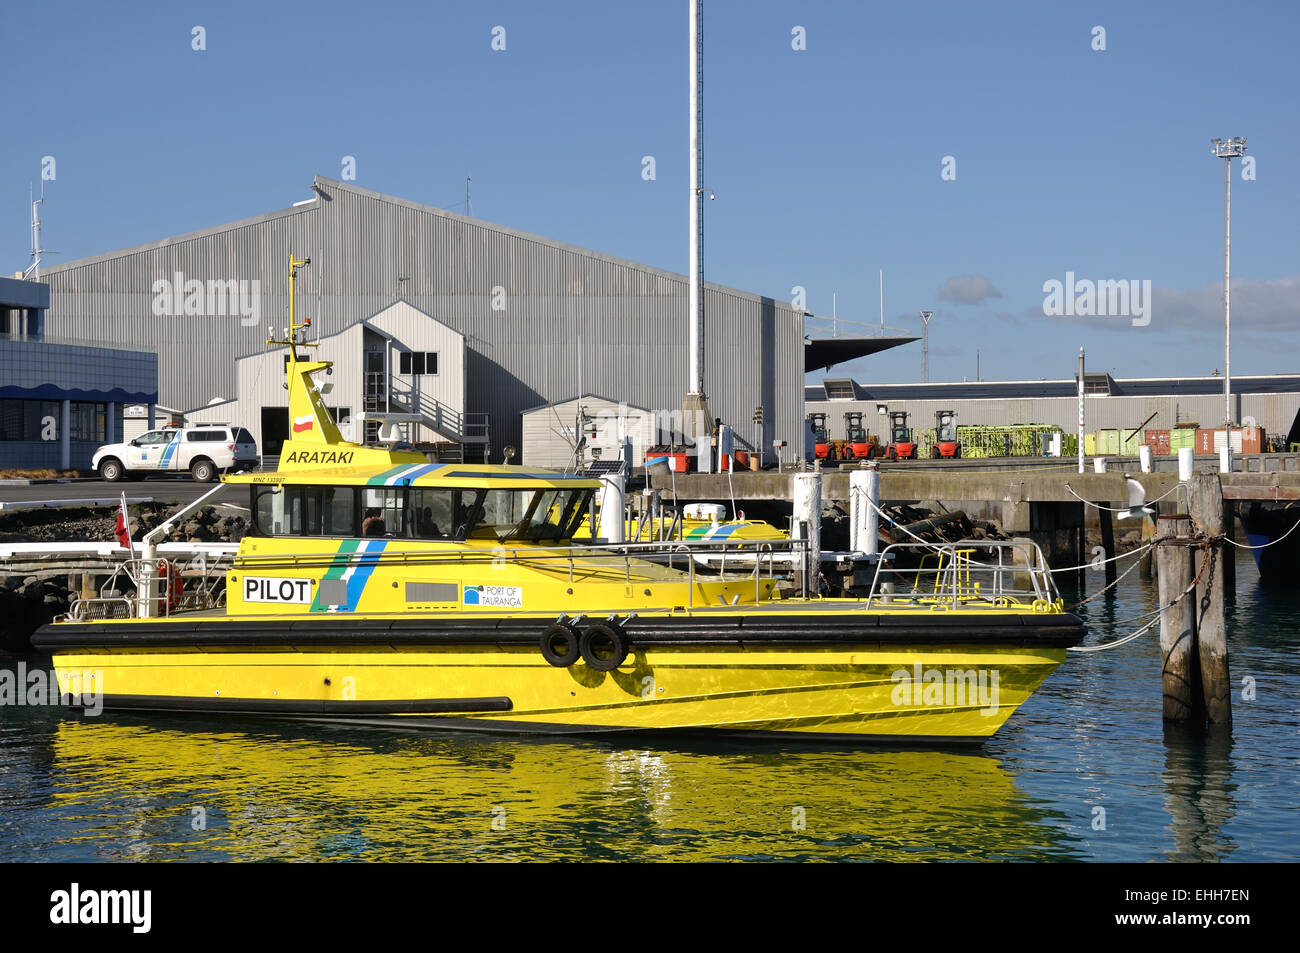 The pilot boat waits for a job at the Port of Tauranga, New Zealand - Stock Image